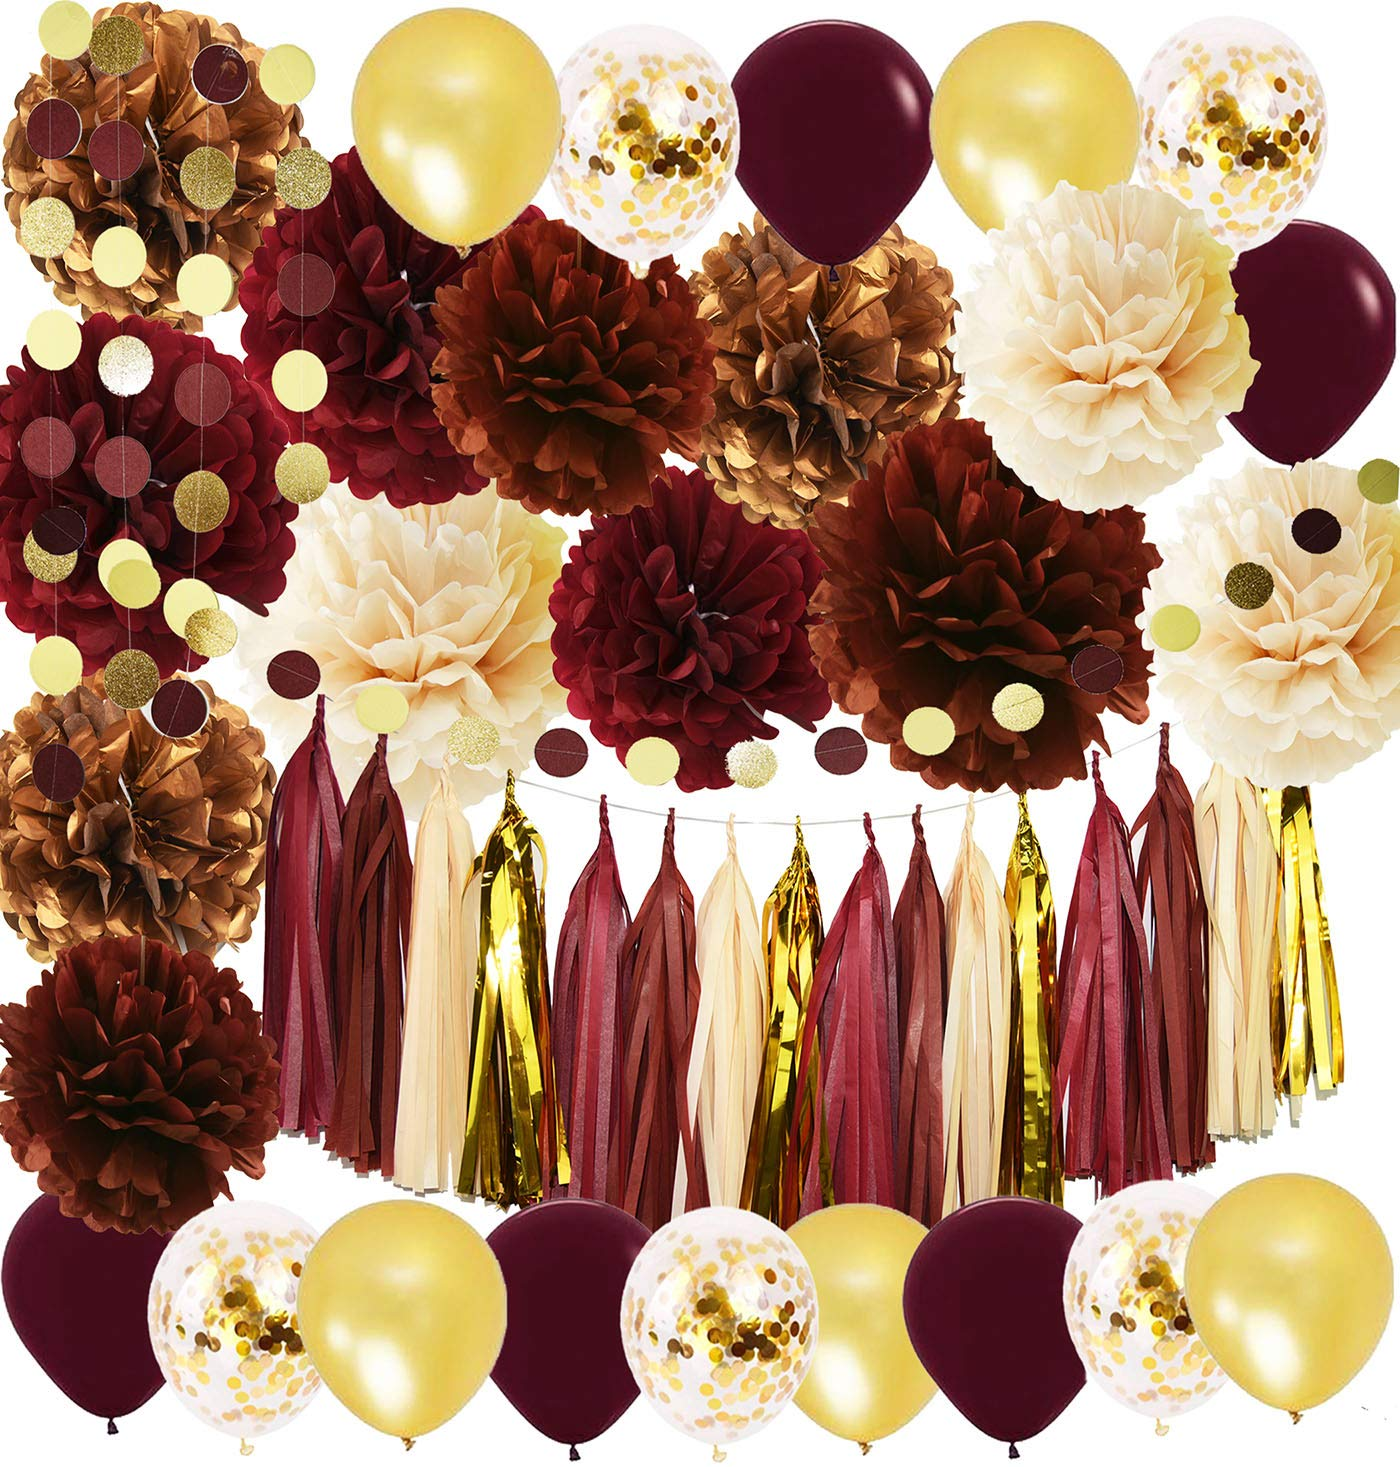 Wine Burgundy Champagne Gold Bridal Shower Decorations Fall Wedding Decorations Big Size Burgundy Tissue Pom Pom Maroon Gold Balloons Burgundy